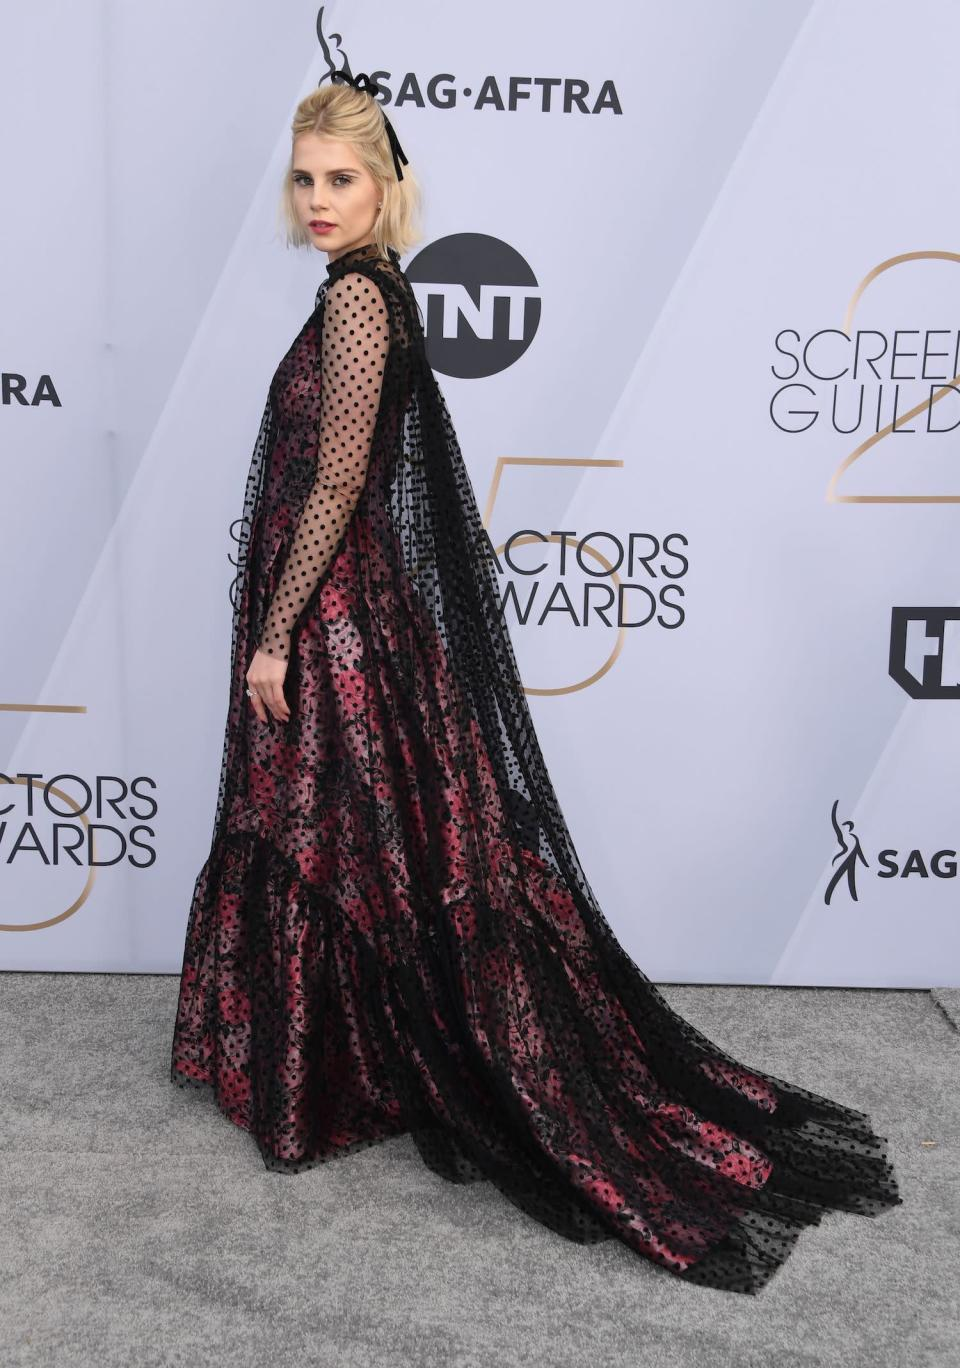 <p>Lucy Boynton, who is in the nominated film <em>Bohemian Rhapsody</em>, walked the silver carpet at the 2019 SAG Awards. (Photo: Getty Images) </p>